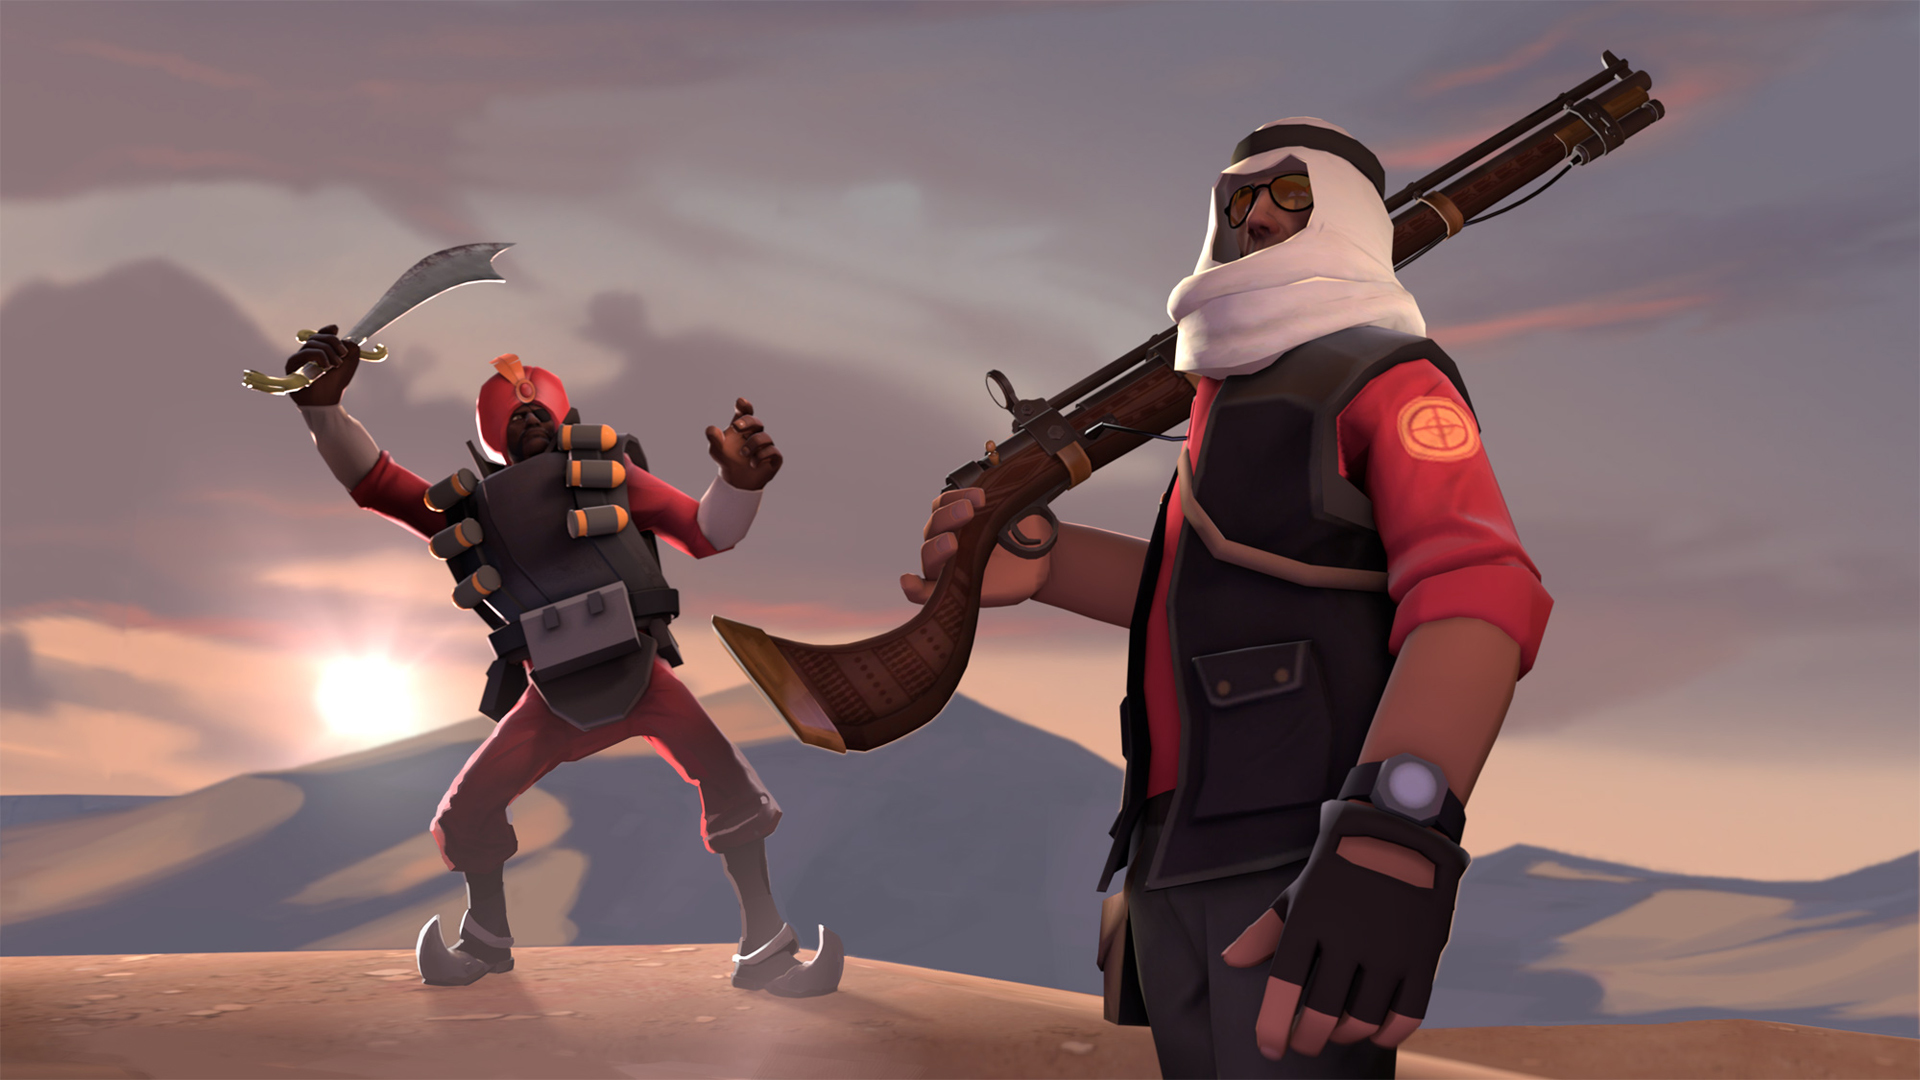 Demoman TF2 team fortress HD Wallpaper